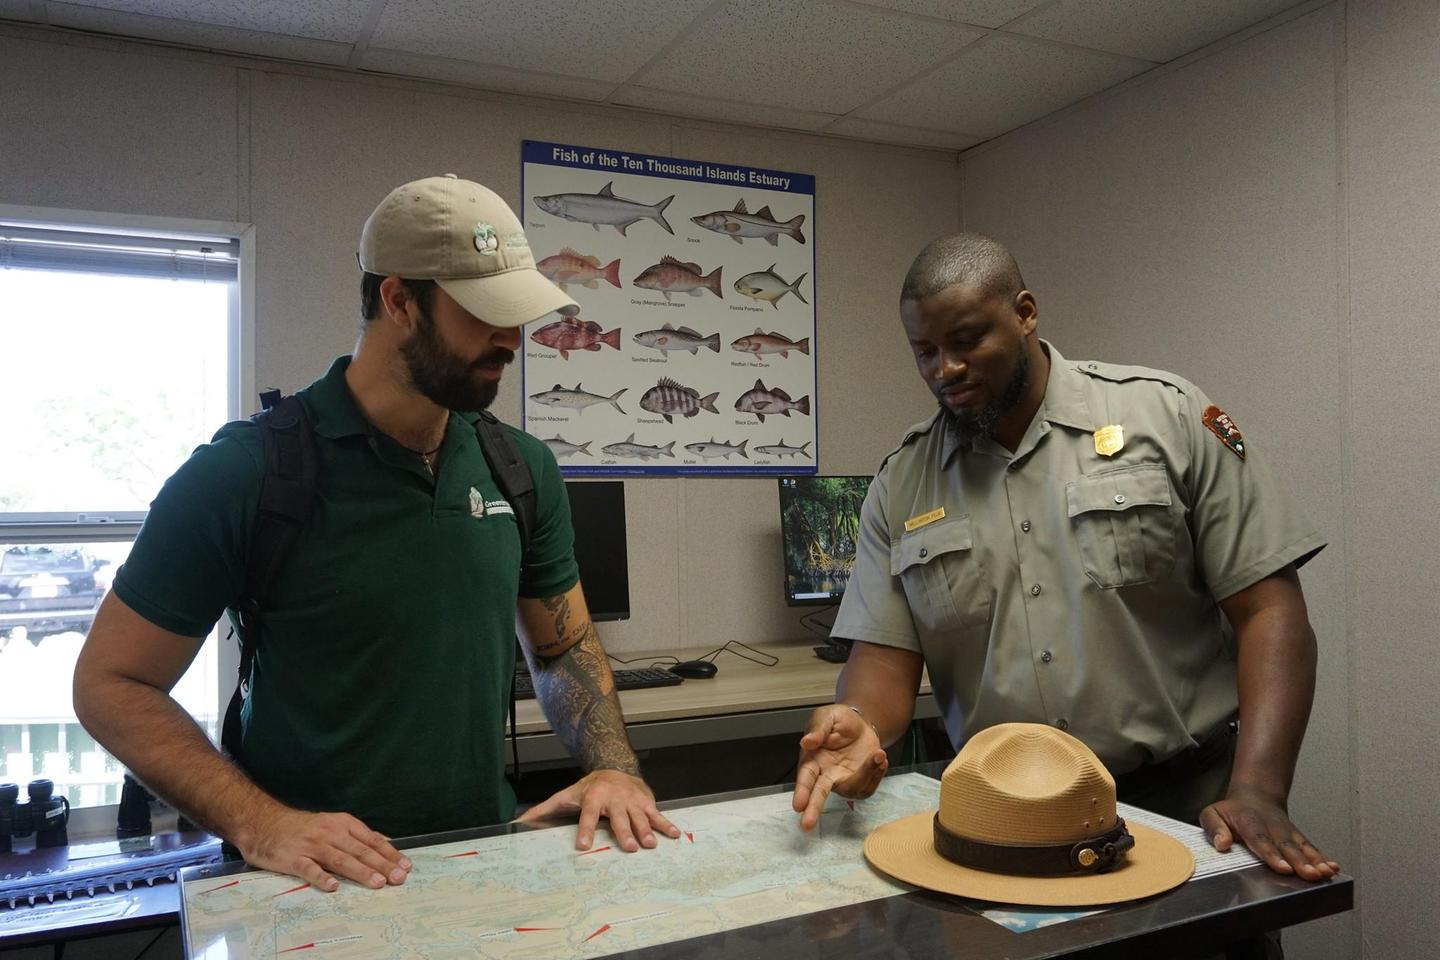 Visitor Center Information DeskA park ranger helps orient a visitor at the Gulf Coast Visitor Center information desk